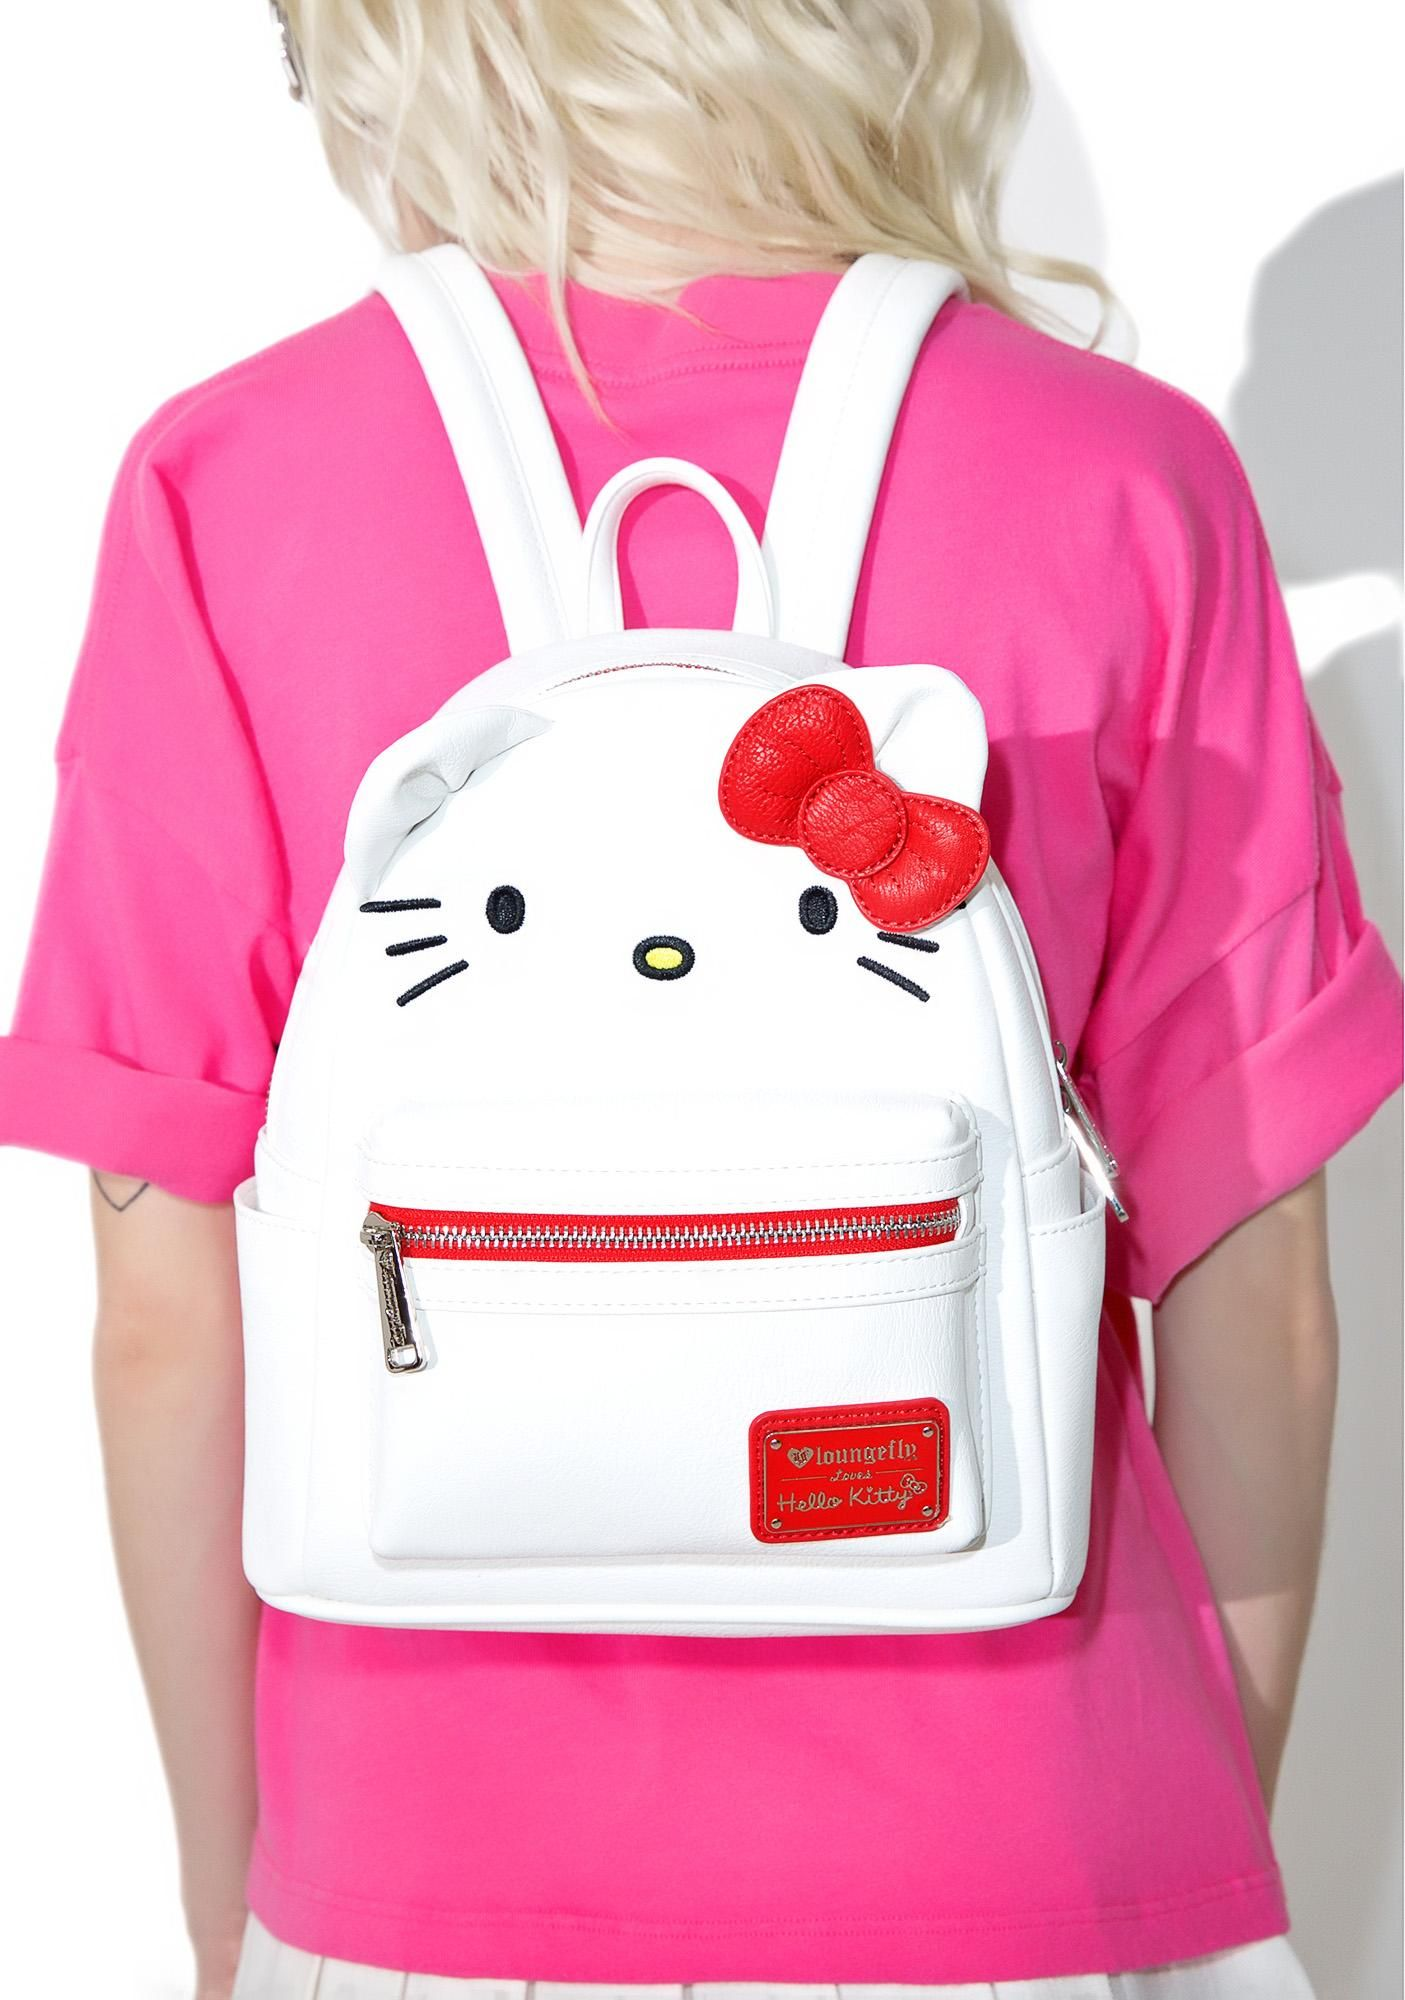 Loungefly X Hello Kitty Mini Backpack cuz yer BFF alwayz has yer back, bb. This supa cute vegan leather mini backpack is in the design of Hello Kitty with a 3D bow and ears applique,roomy medium interior, front zip pocket, two side pockets, multicolor adjustable straps, and locker loop detail.